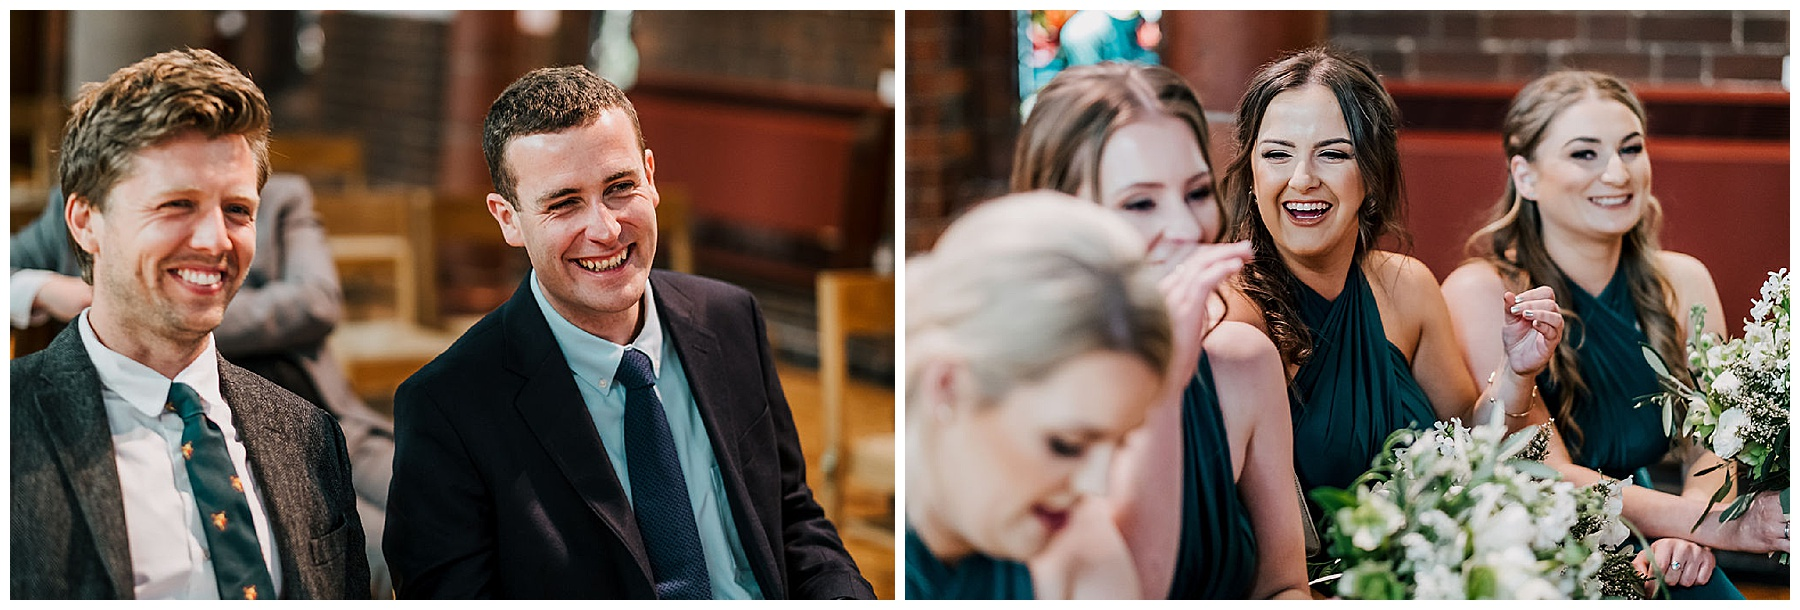 Emma + Will – Stock Farm – So lucky to have met this kind amazing couple